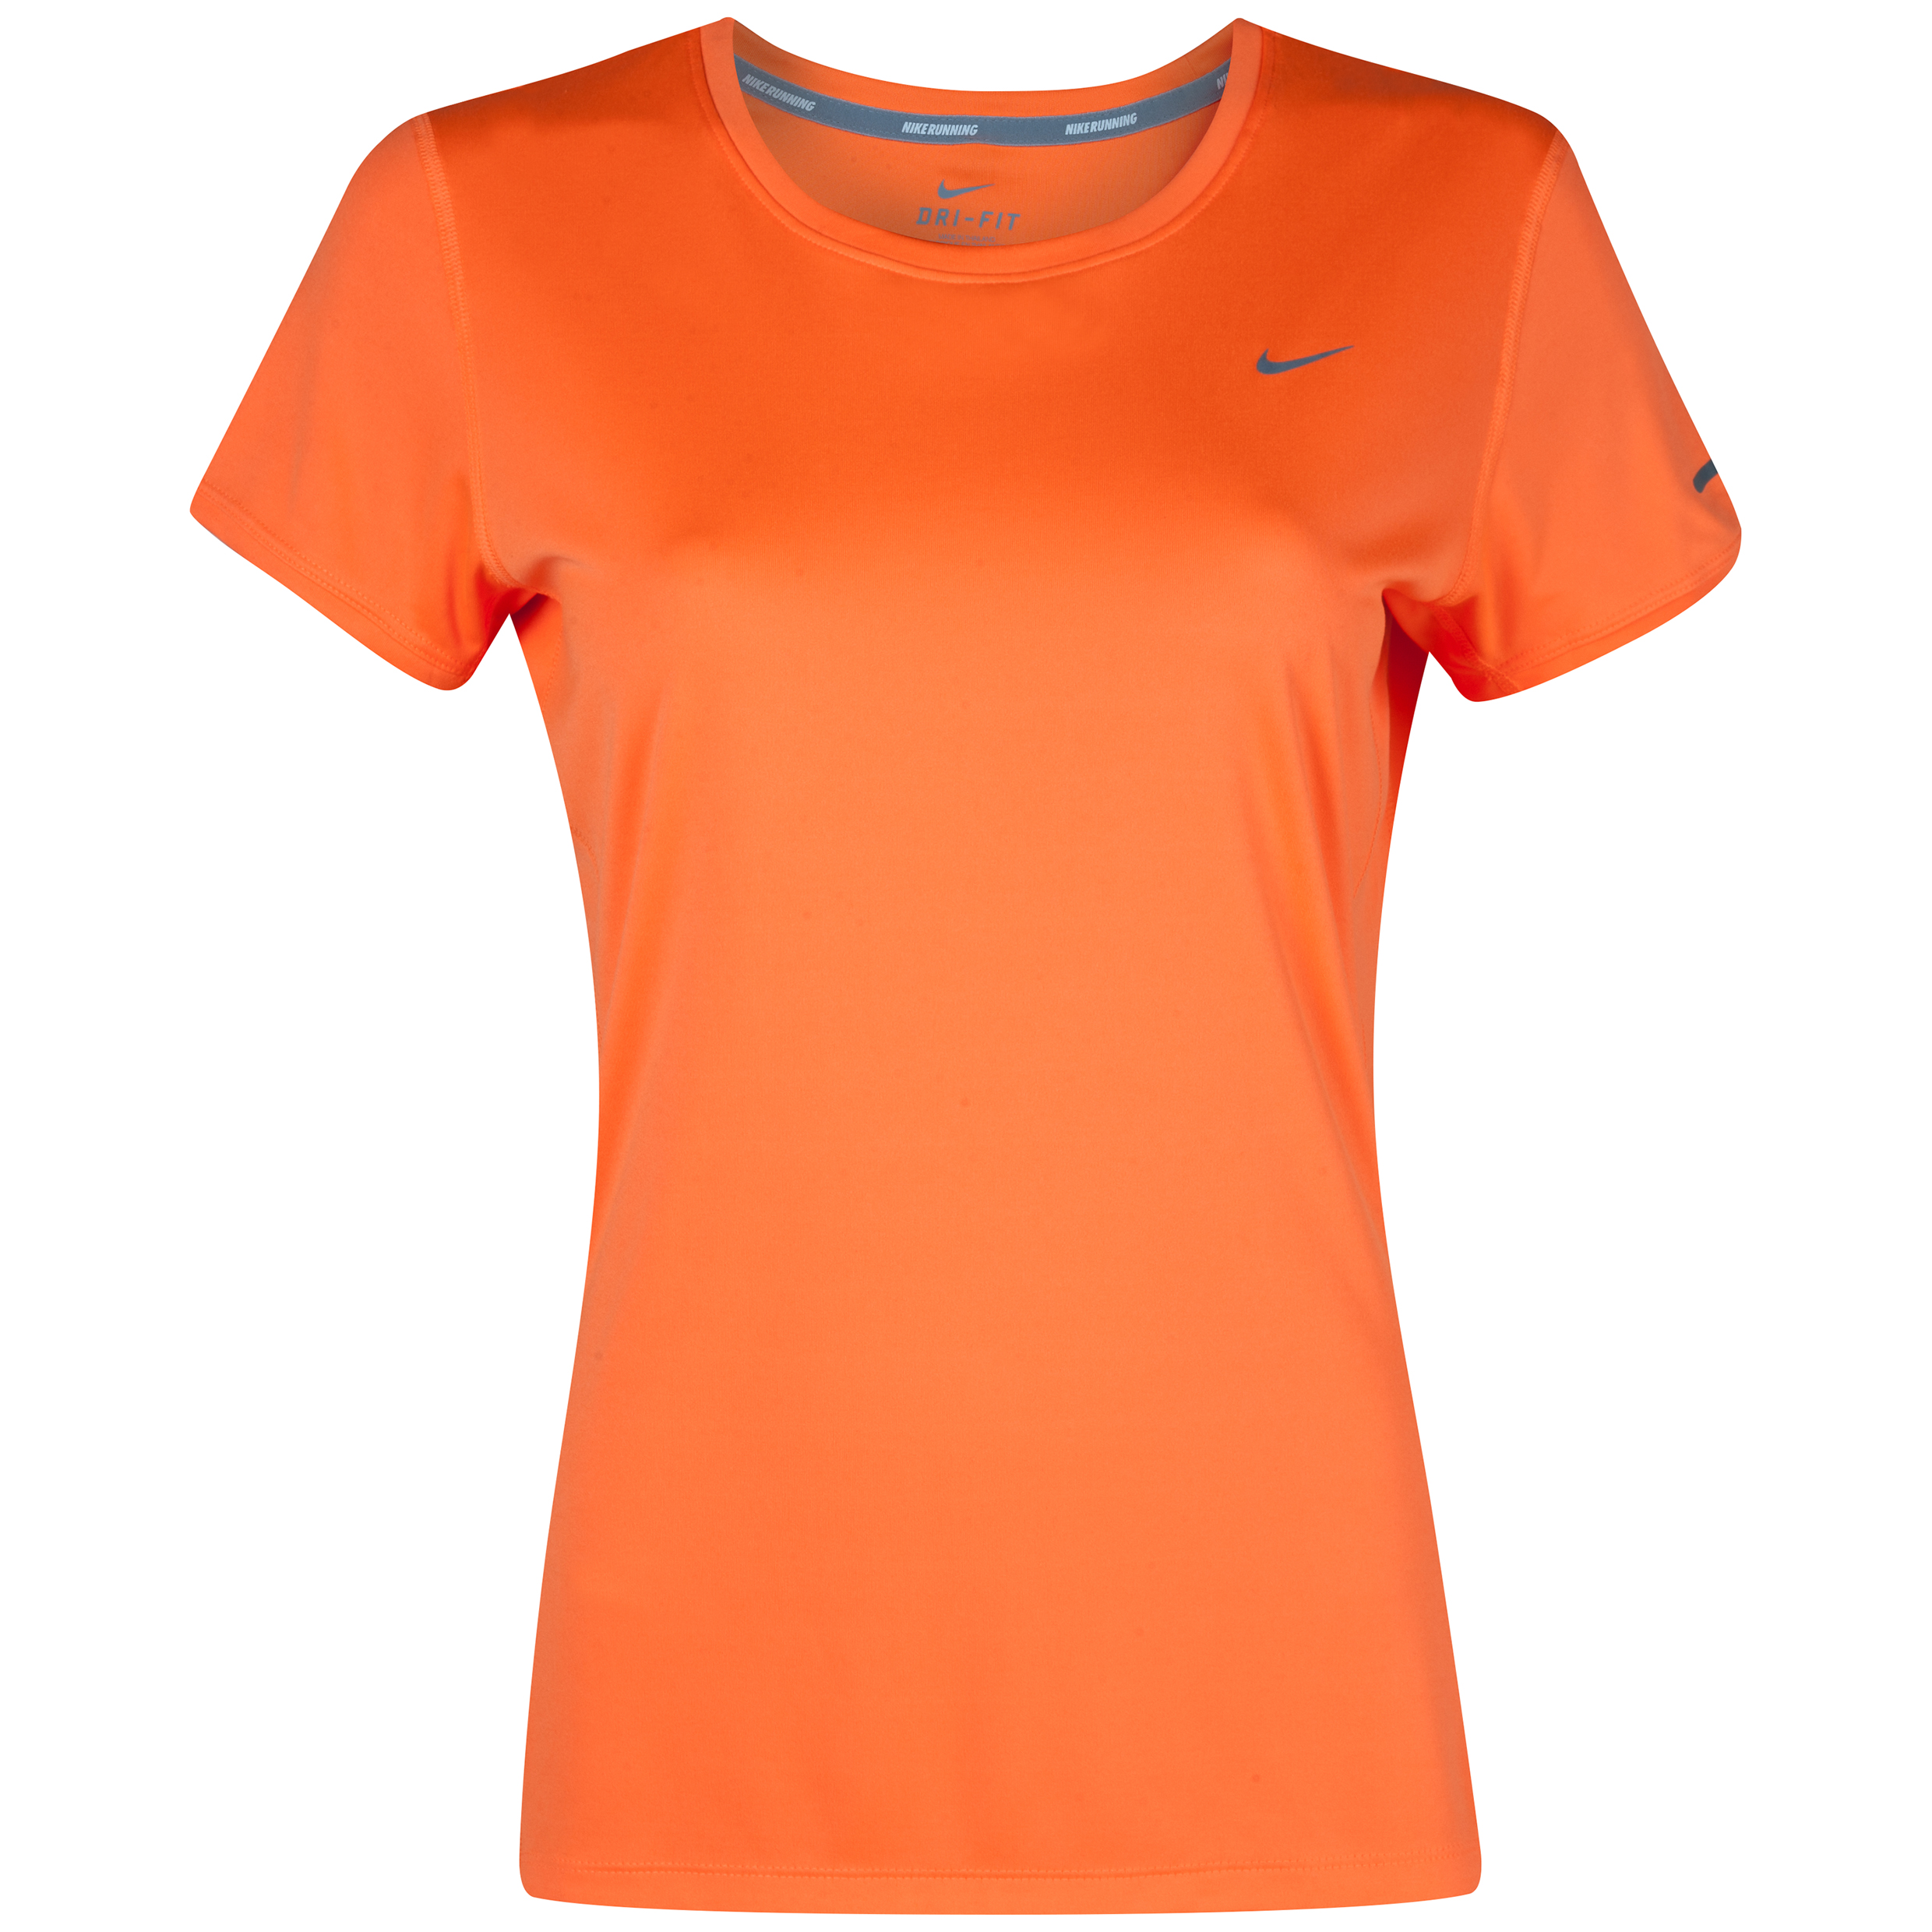 Nike Miler Short Sleeve Crew Top - Orange - Womens